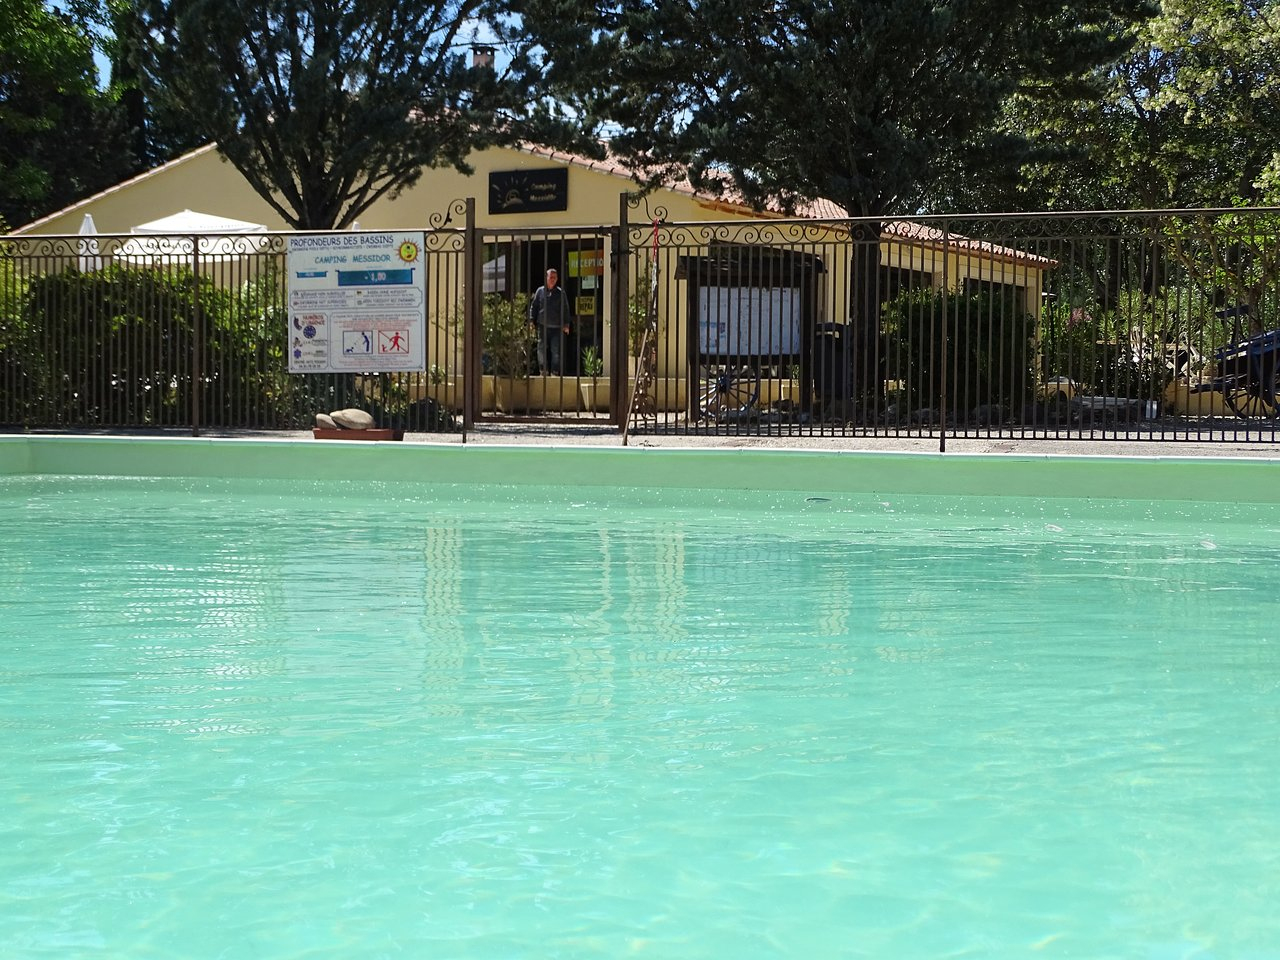 Camping Naturiste Messidor - Campground Reviews (Le Puy ... pour Piscine Puy Sainte Reparade